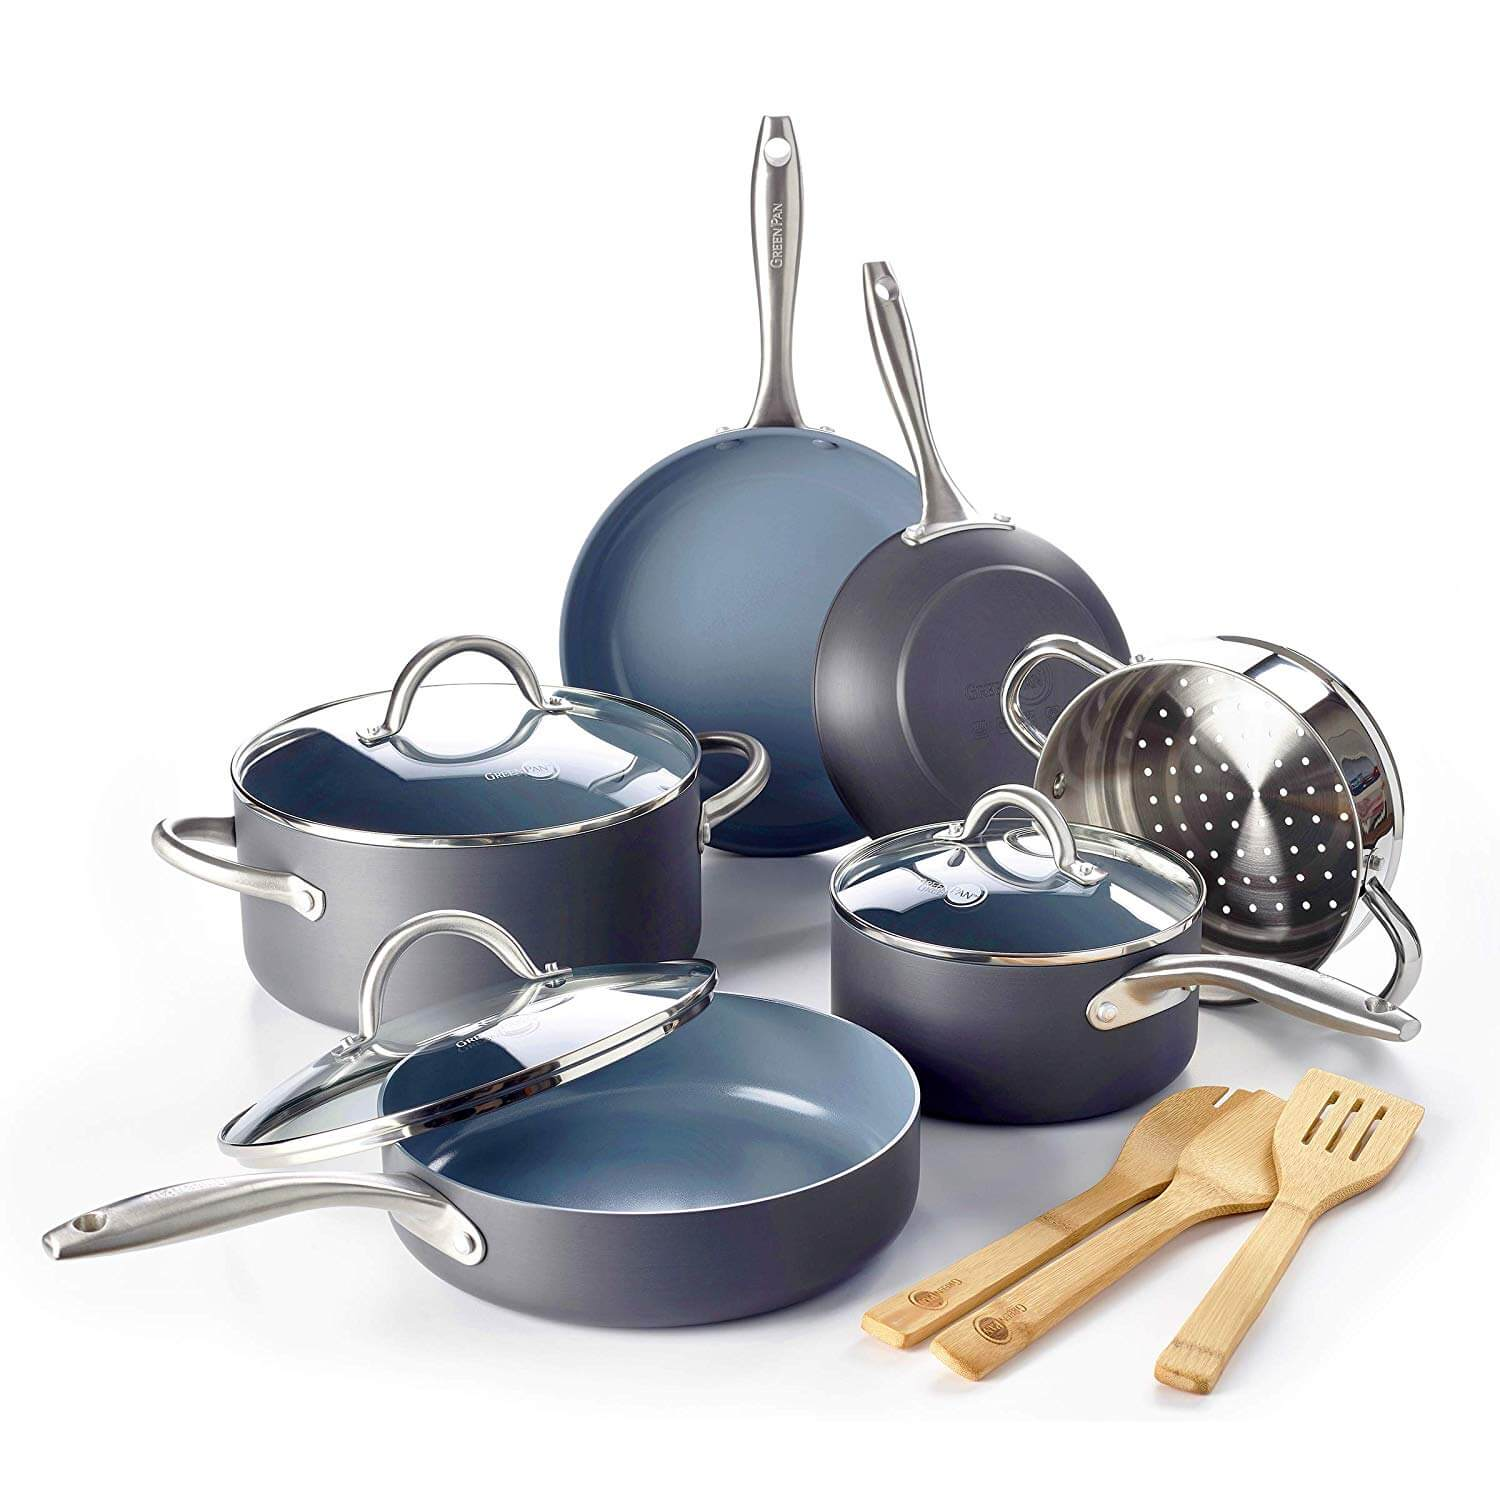 GreenPan Lima Ceramic Cookware Set